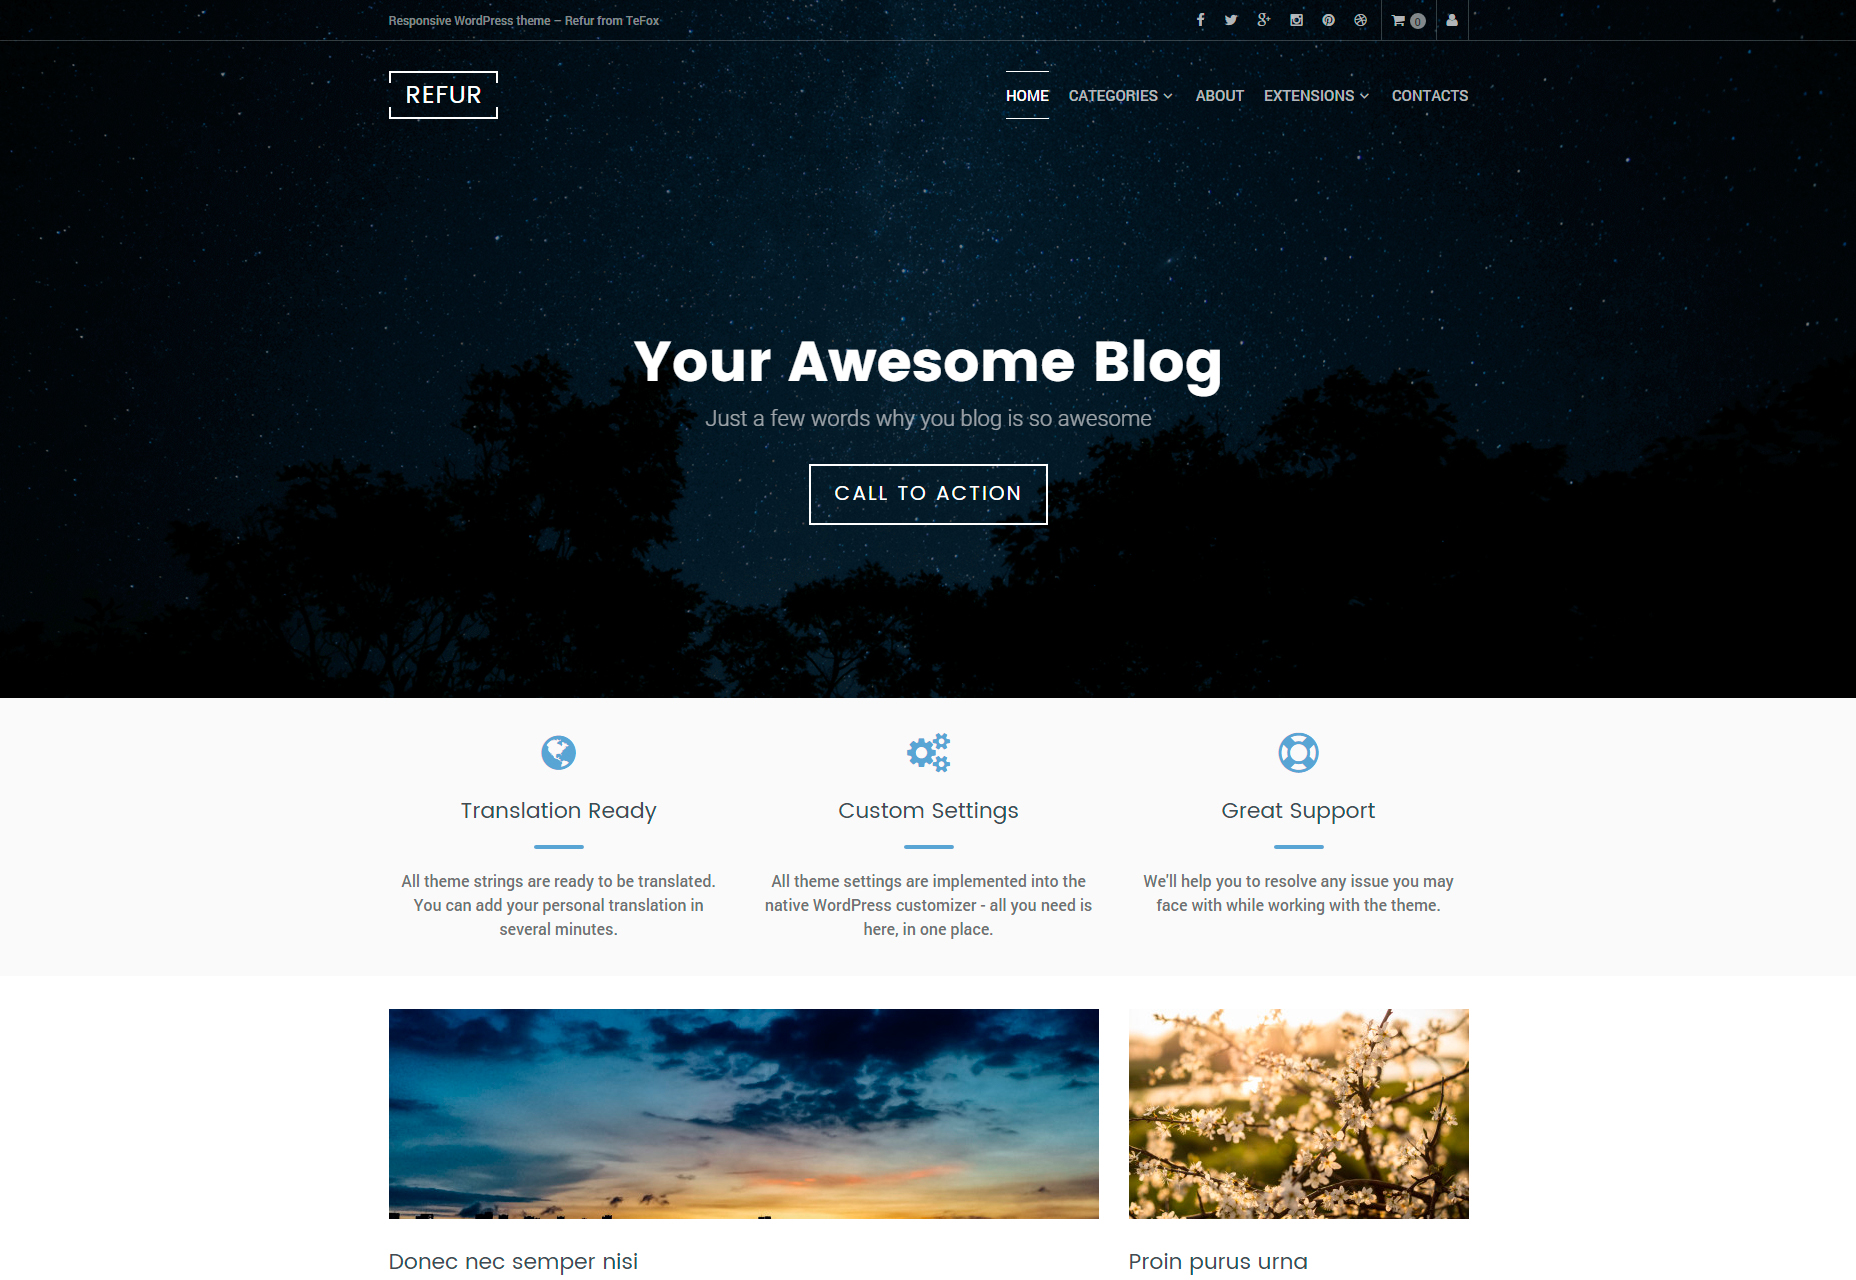 Refur: tema de WordPress limpio y moderno de blogs